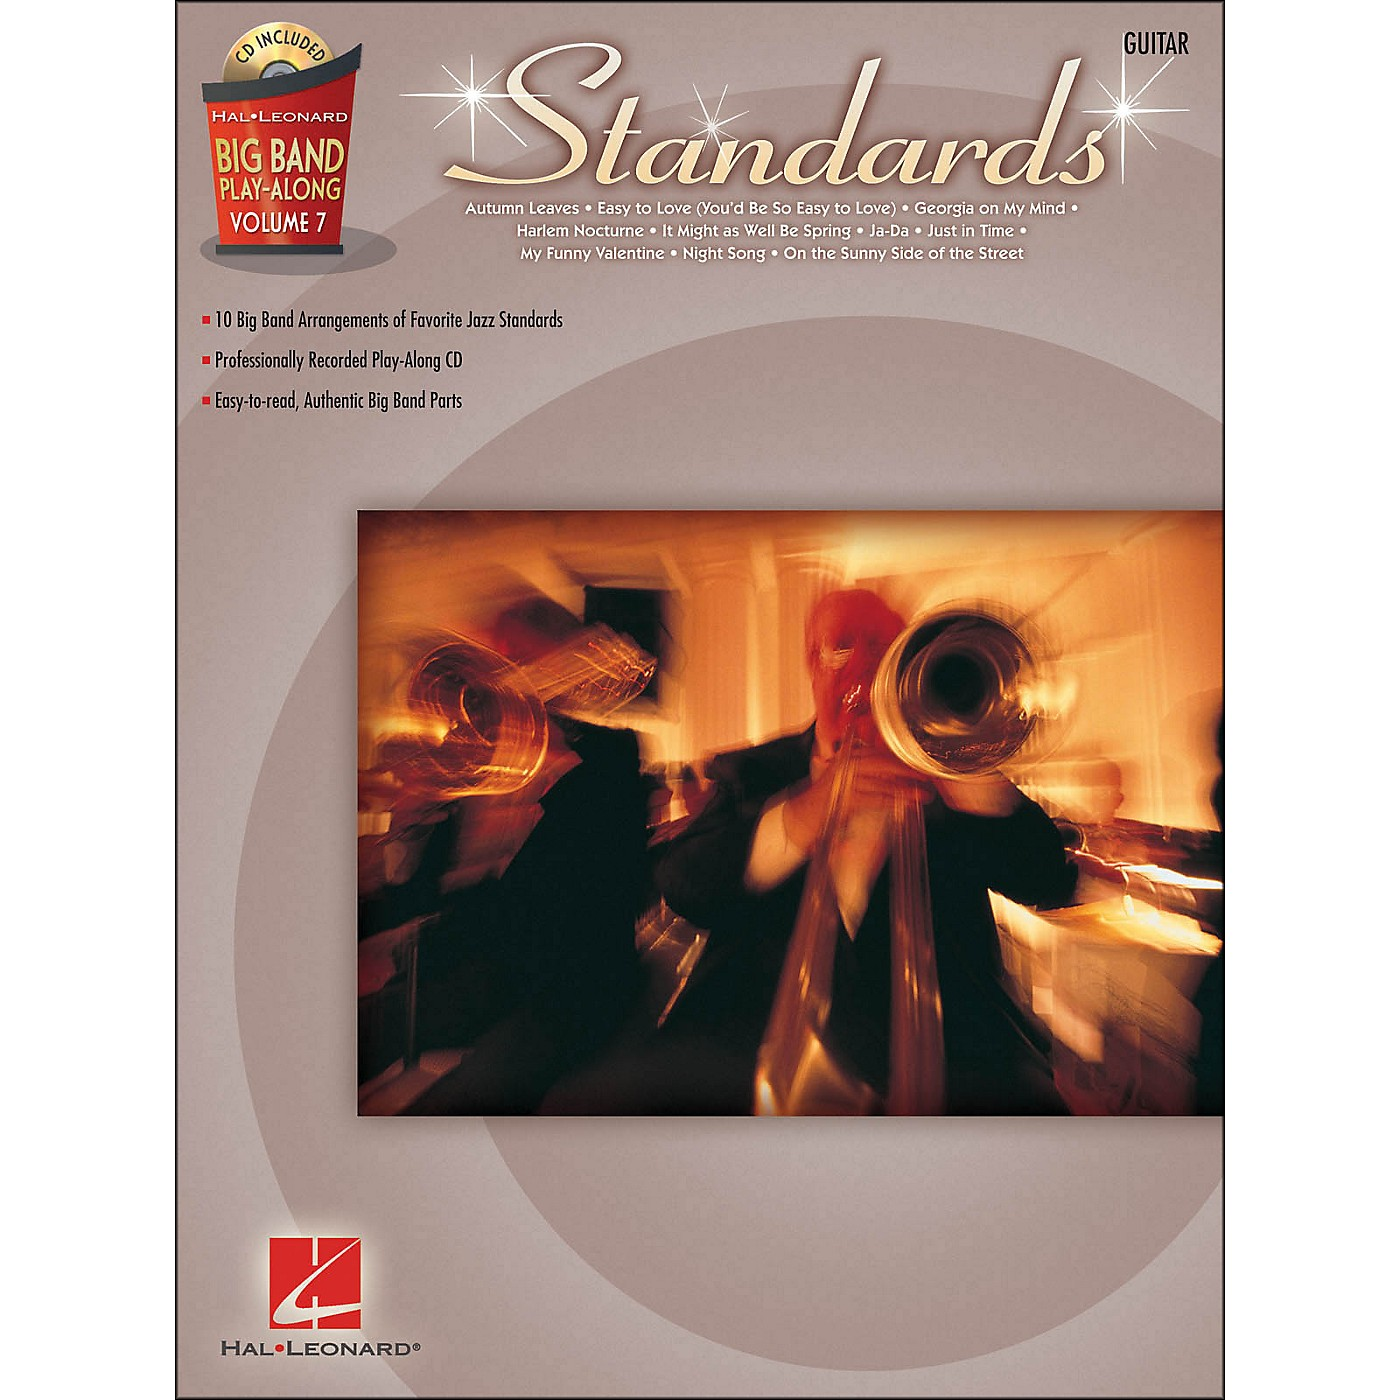 Hal Leonard Standards - Big Band Play-Along Vol. 7 Guitar thumbnail